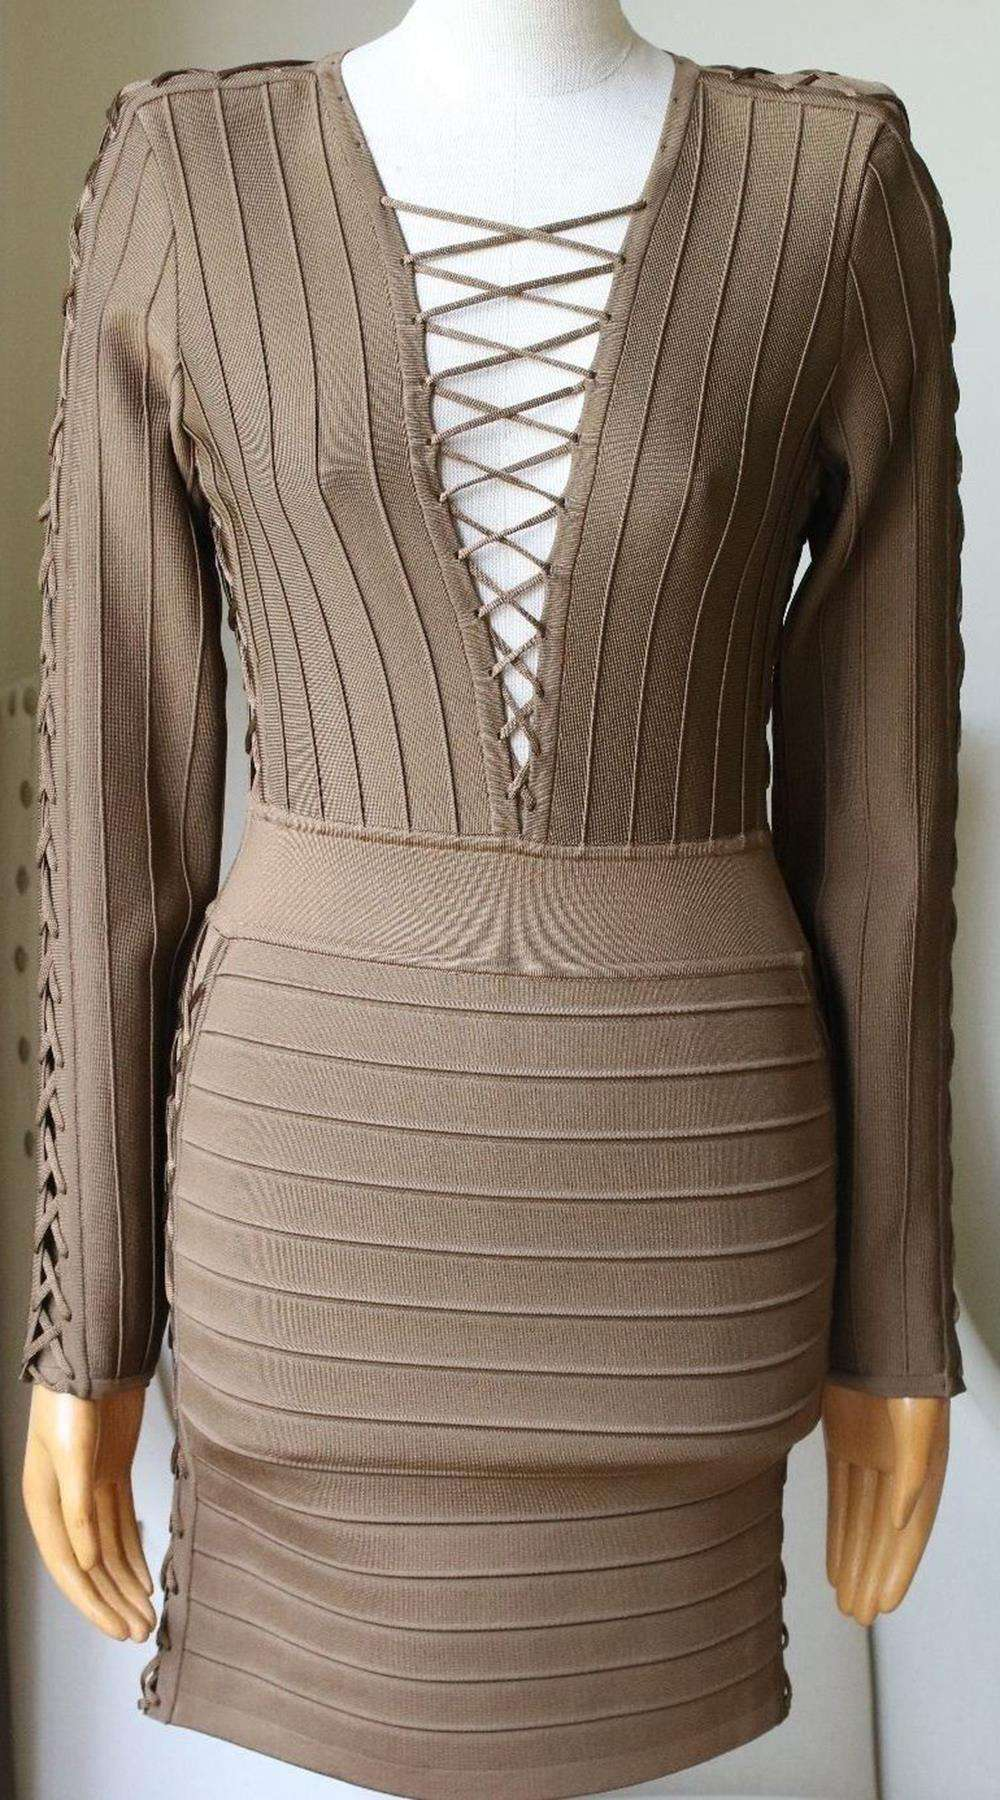 BALMAIN LACE UP RIBBED STRETCH KNIT MINI DRESS FR 38 UK 10